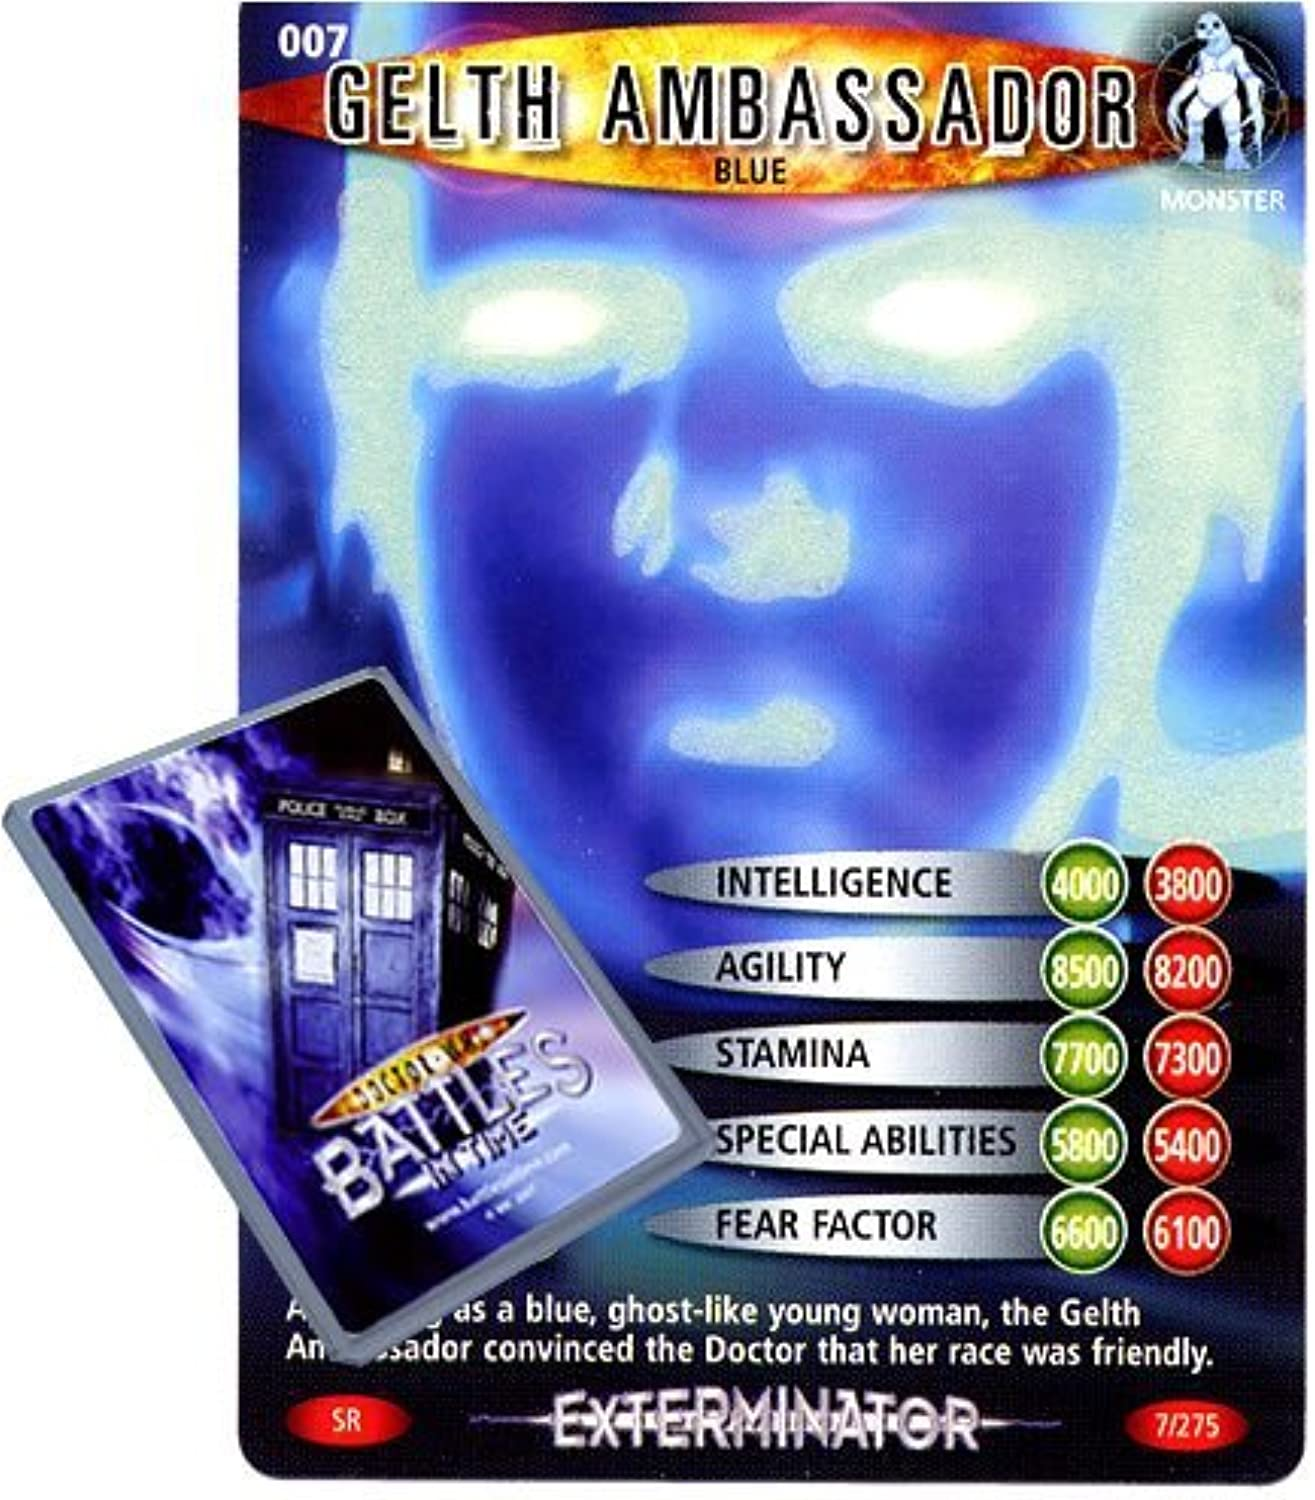 Doctor Who - Single Card   Exterminator 007 Gelth Ambassador bluee Dr Who Battles in Time Super Rare Card by Deckboosters